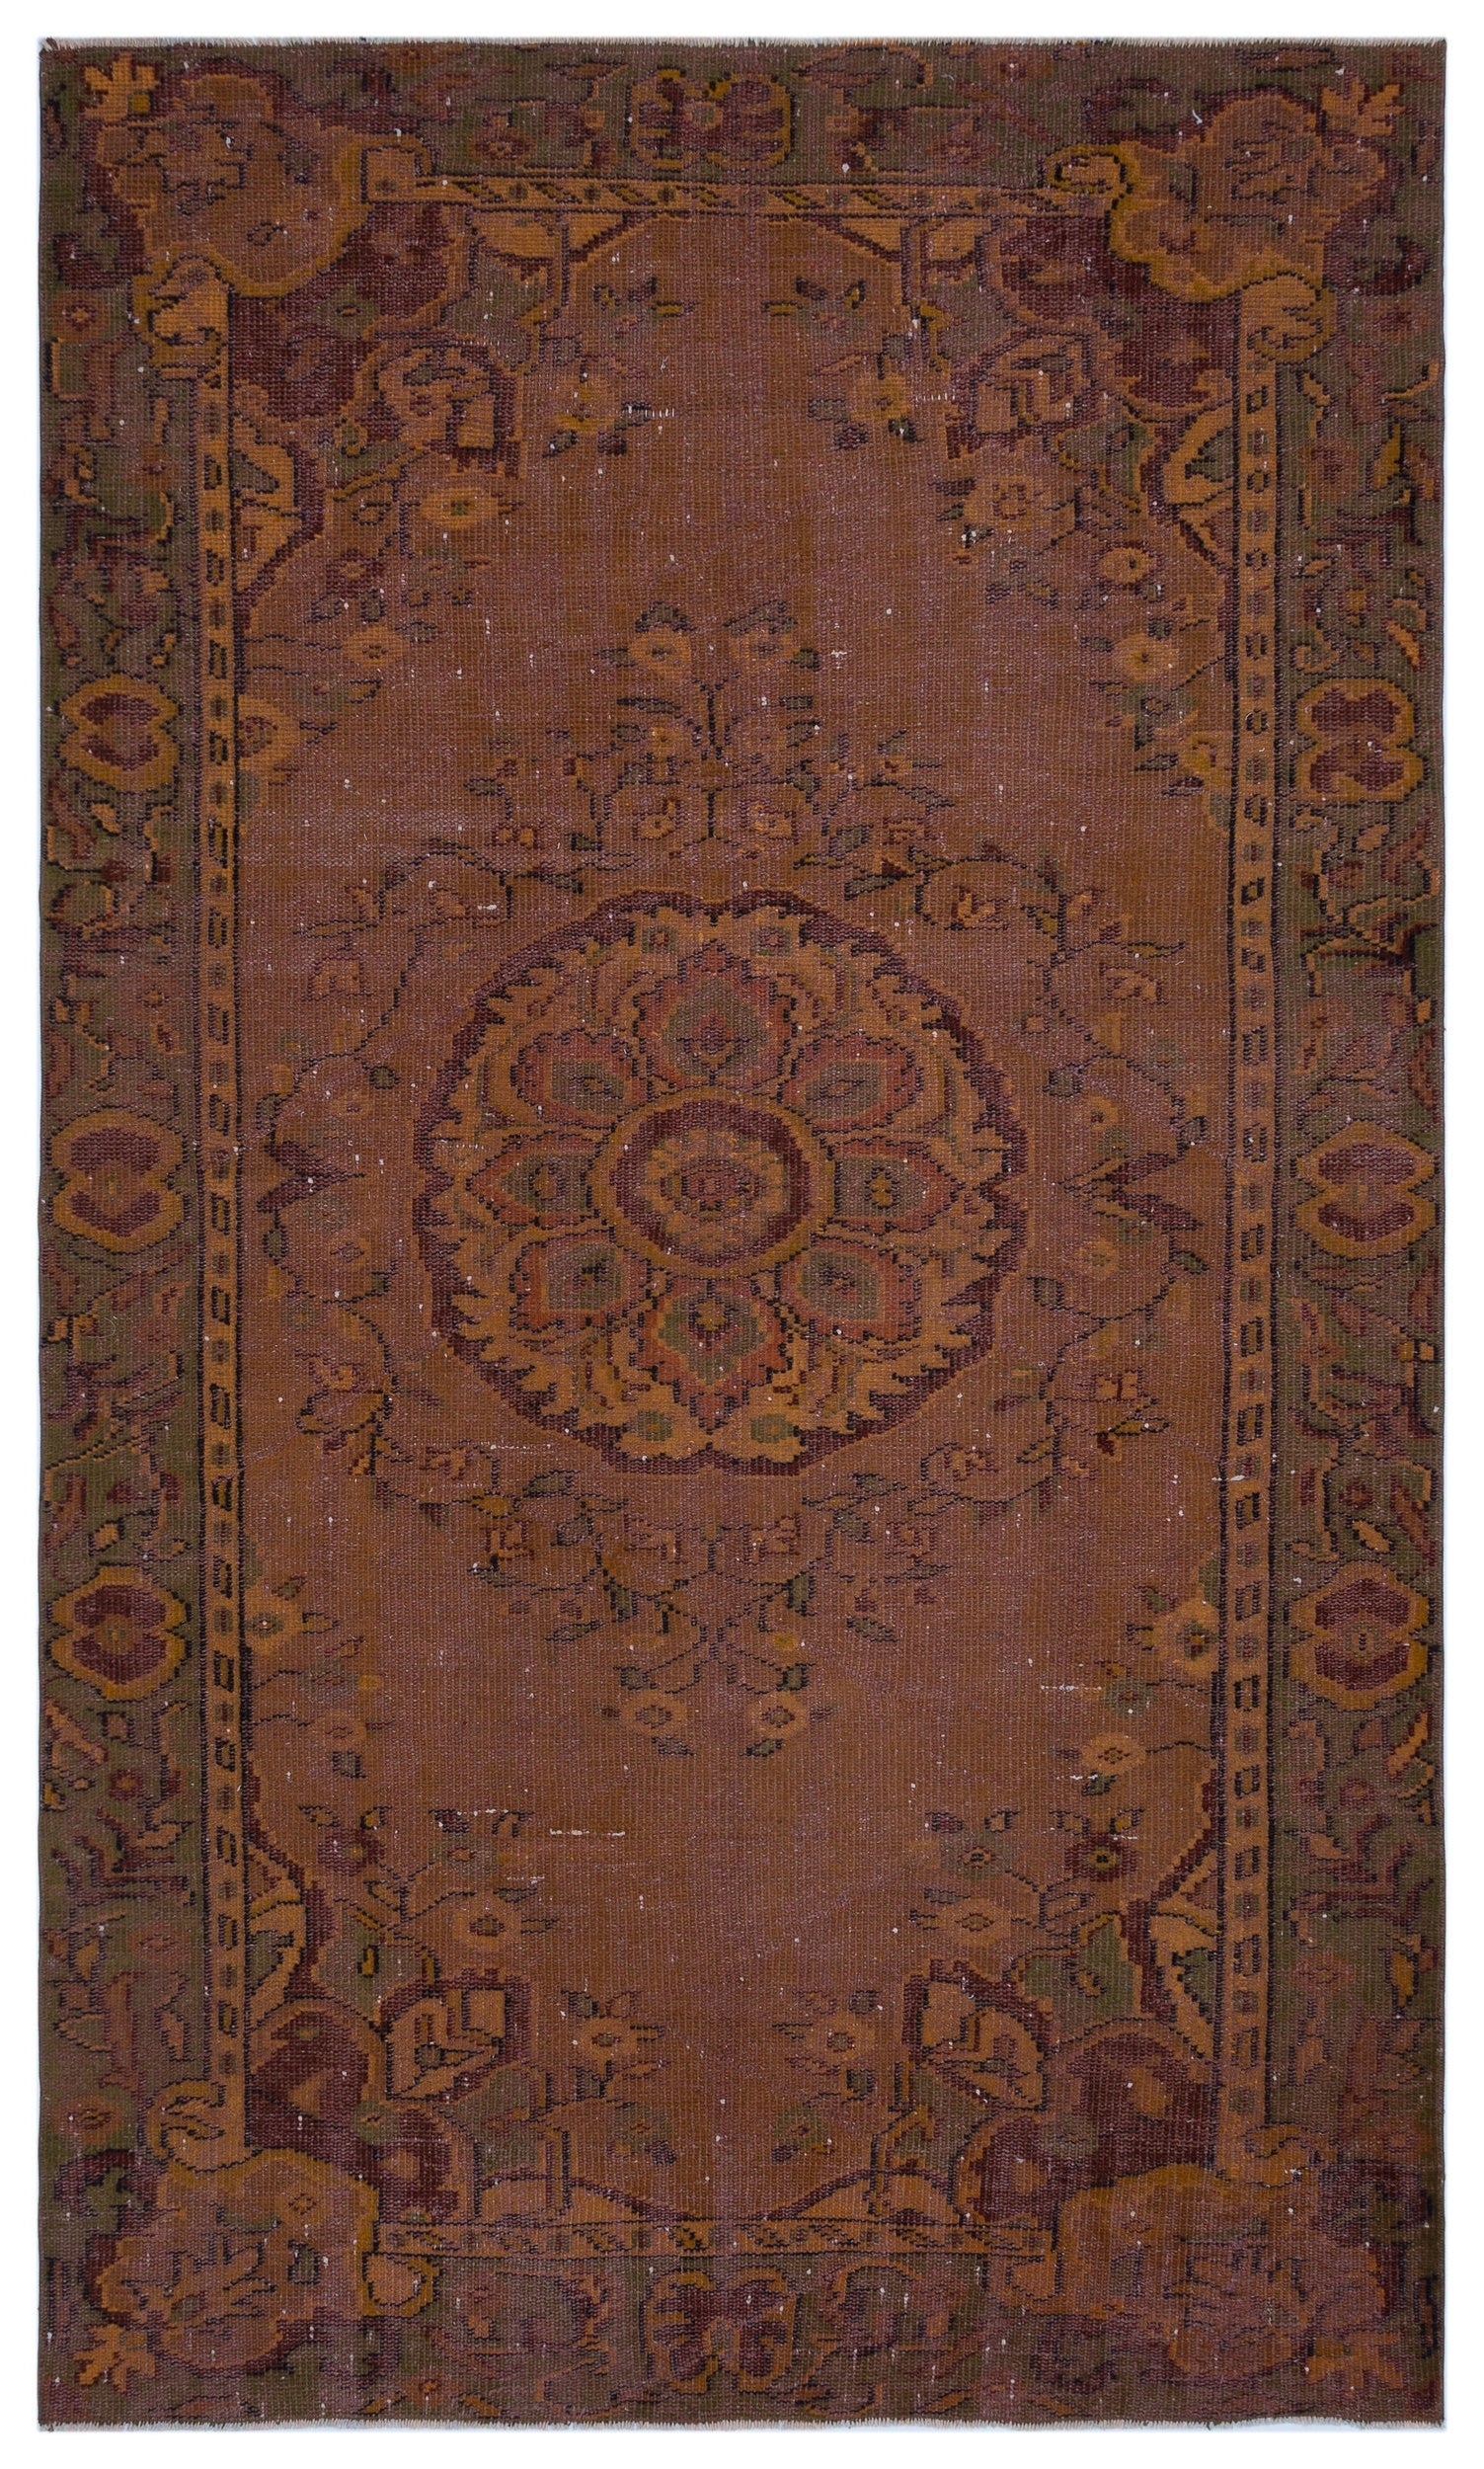 Brown Over Dyed Vintage Rug 5'7'' x 9'1'' ft 171 x 278 cm